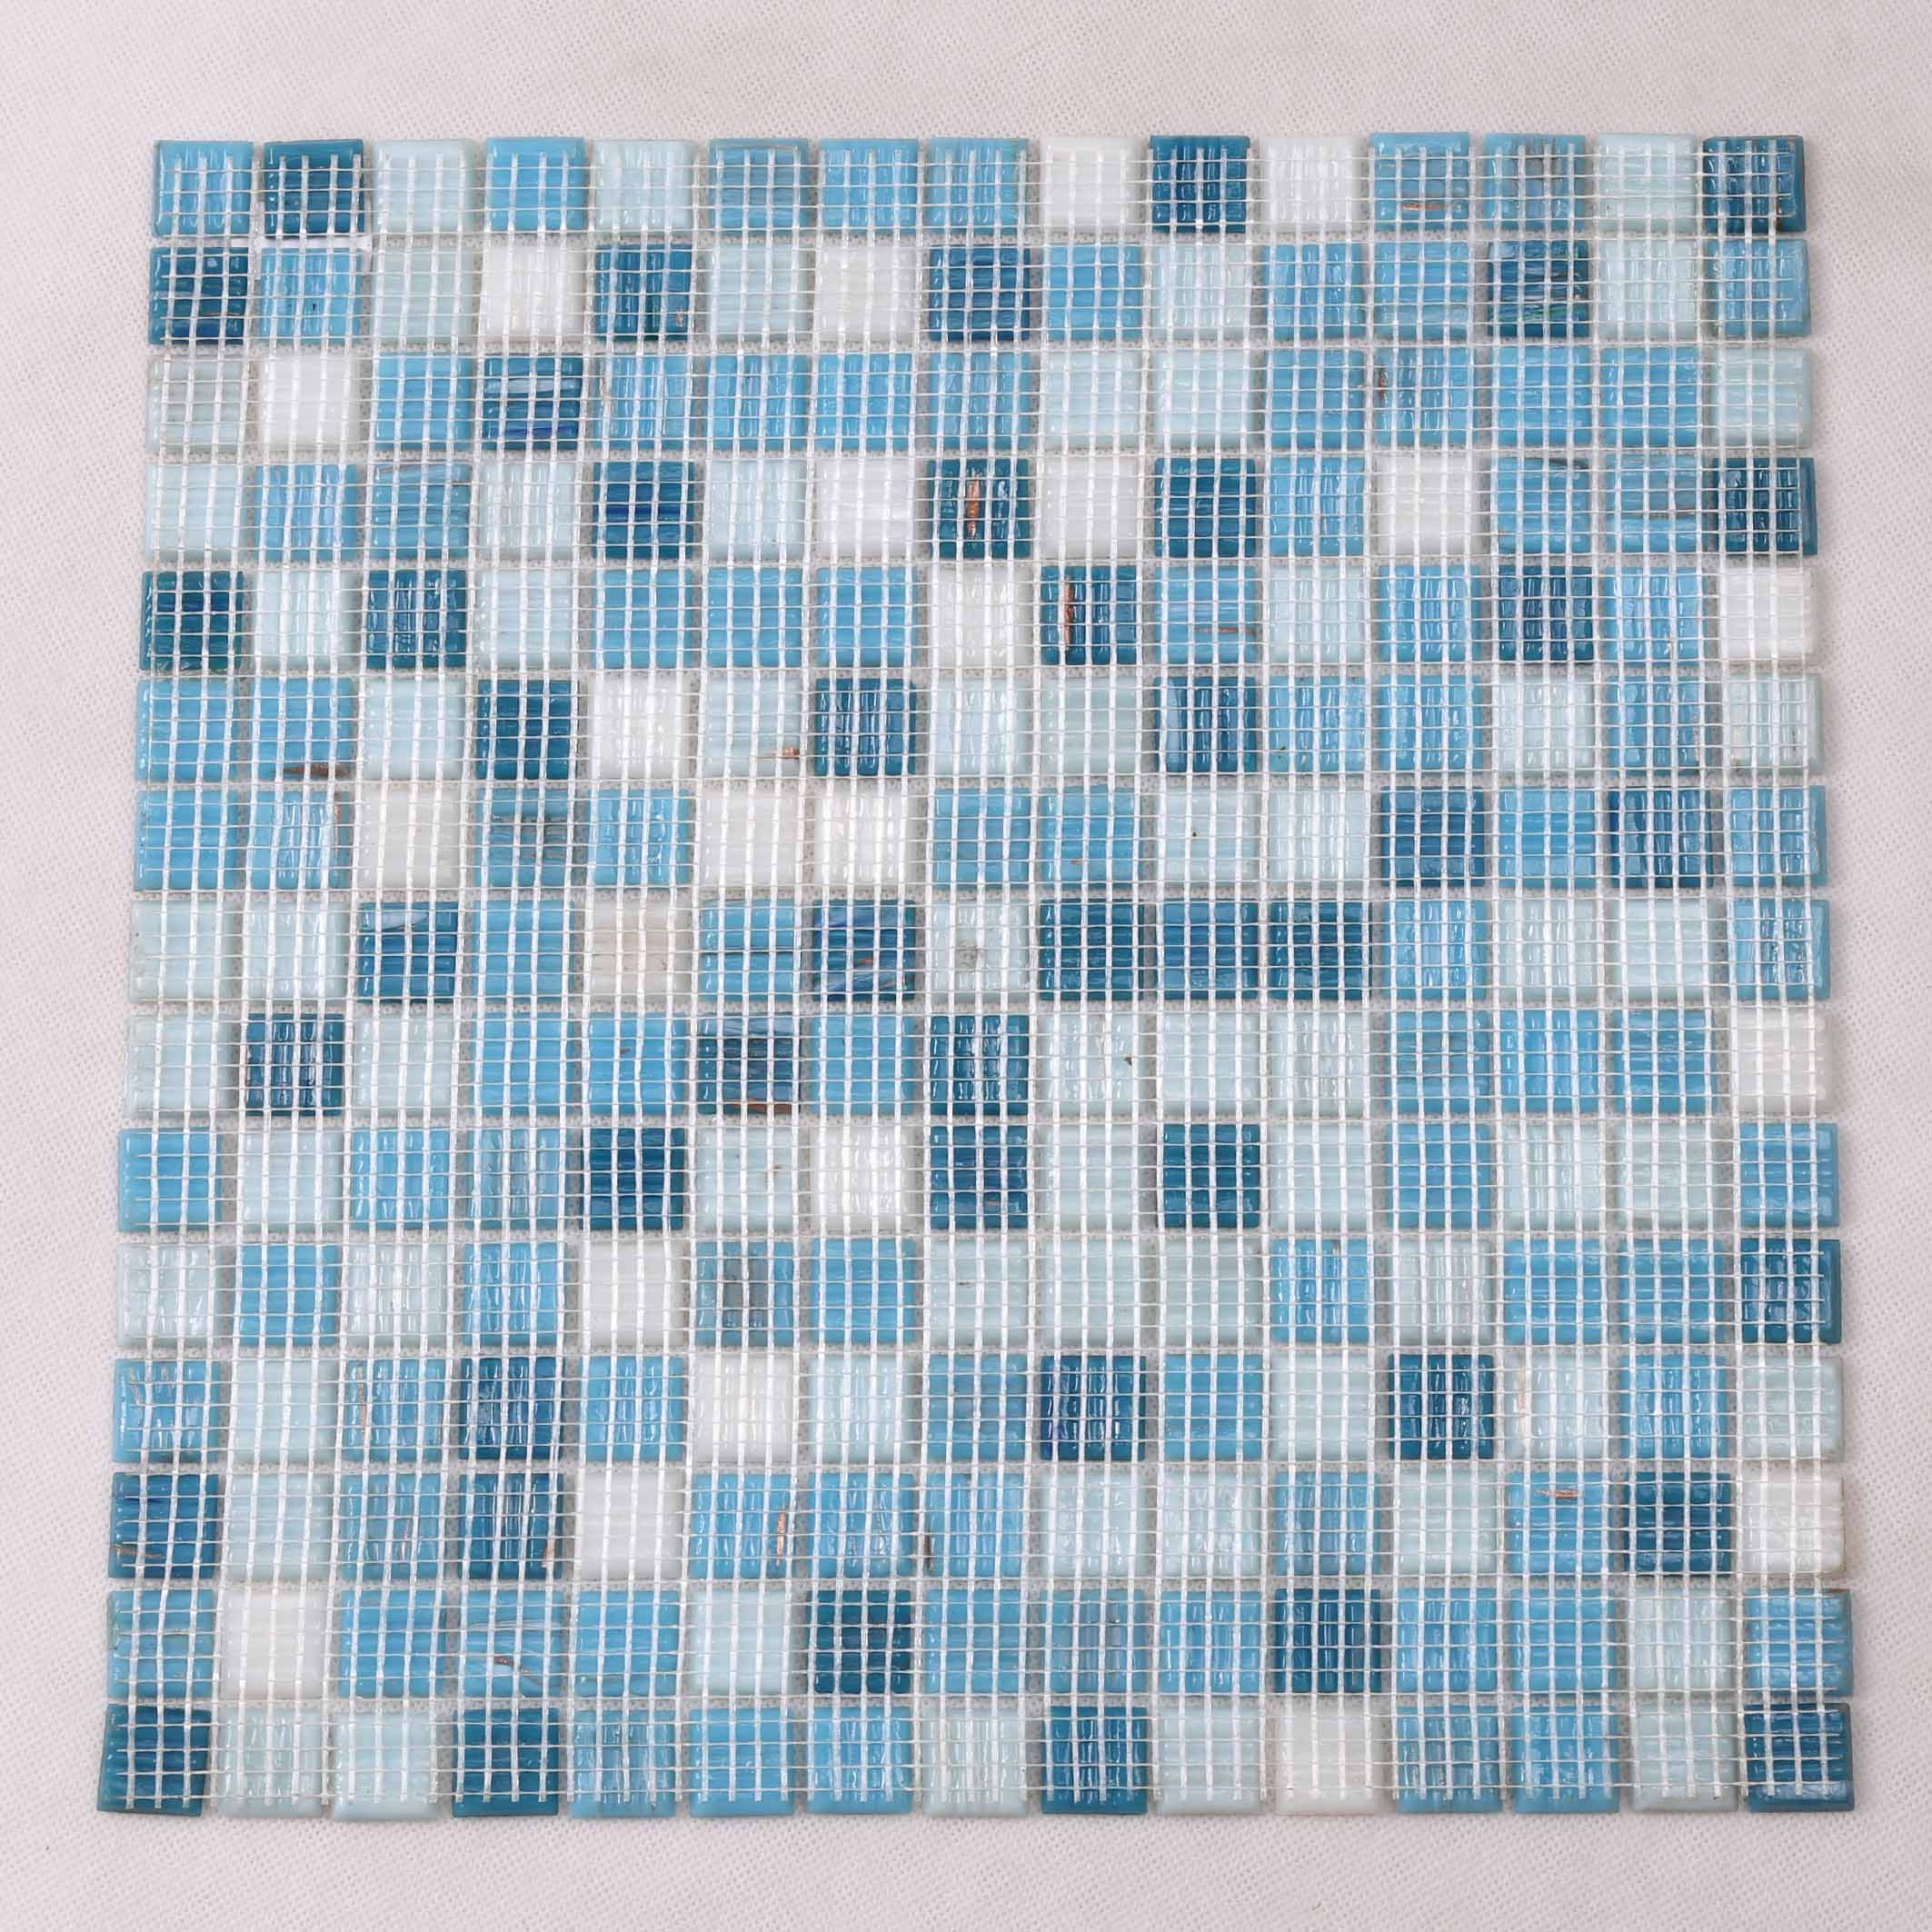 Heng Xing blue pool mosaics Supply for spa-5